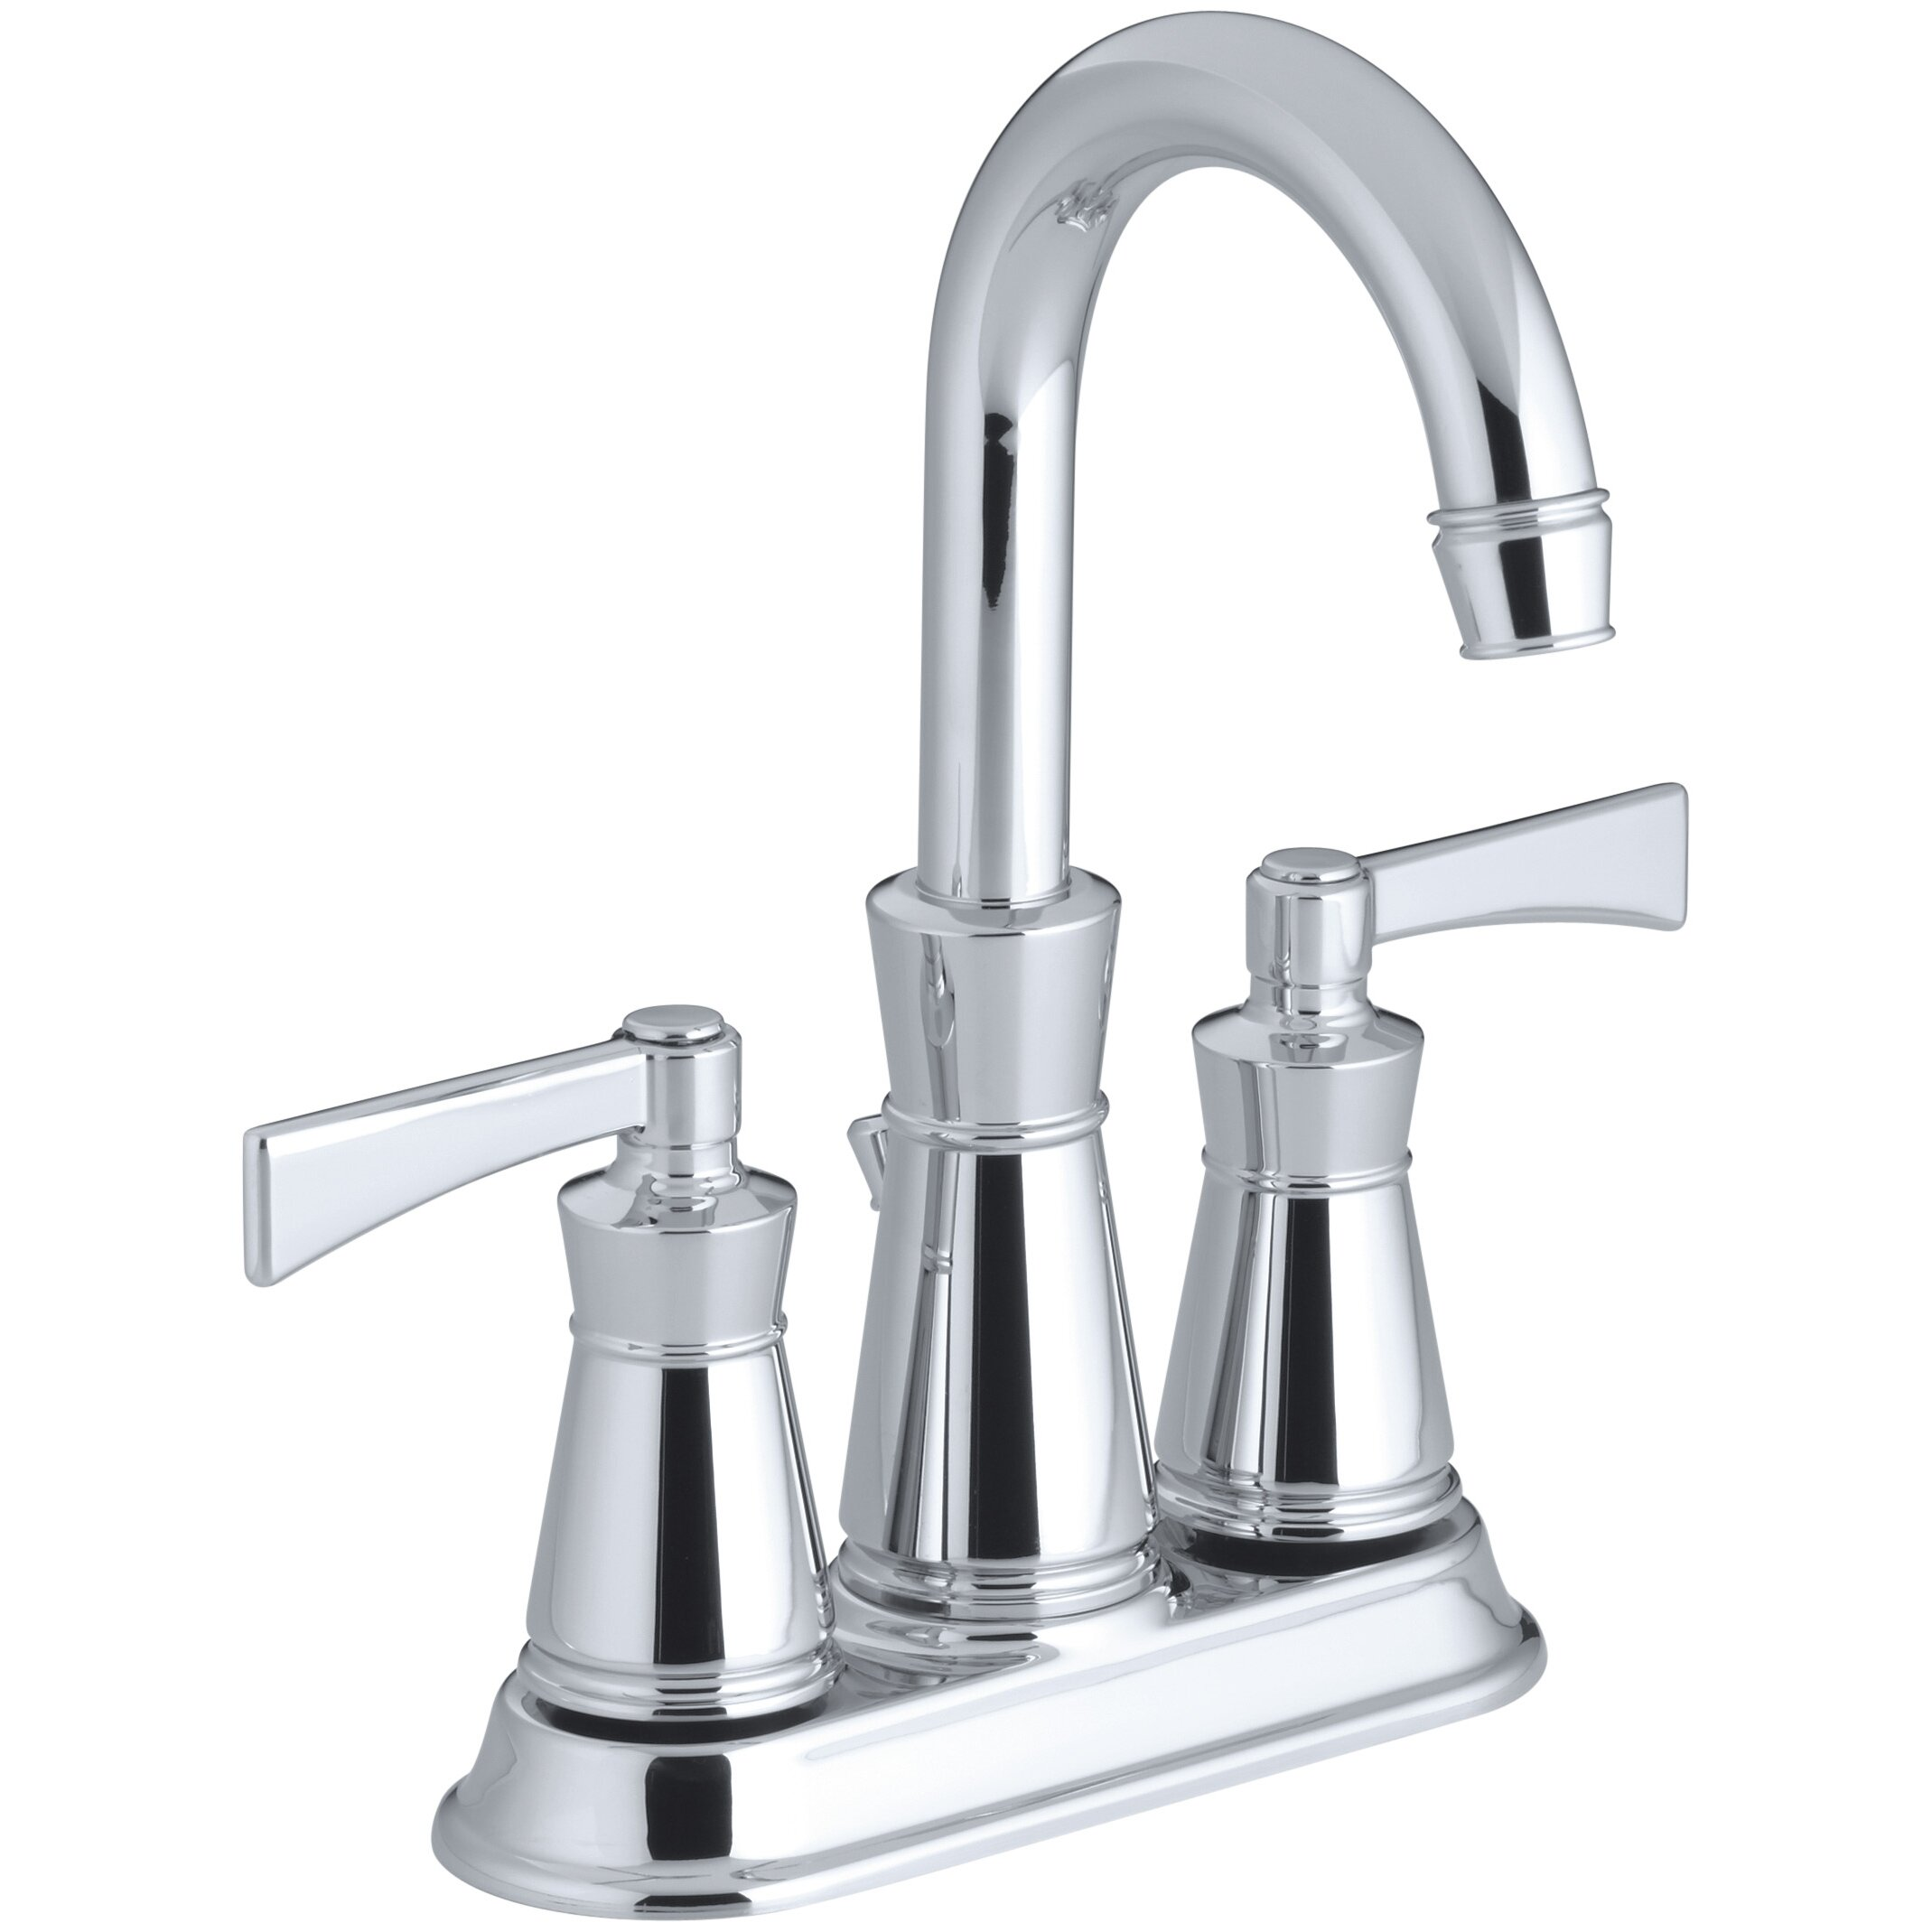 Kohler Faucet Reviews : Kohler Archer Centerset Bathroom Sink Faucet & Reviews Wayfair